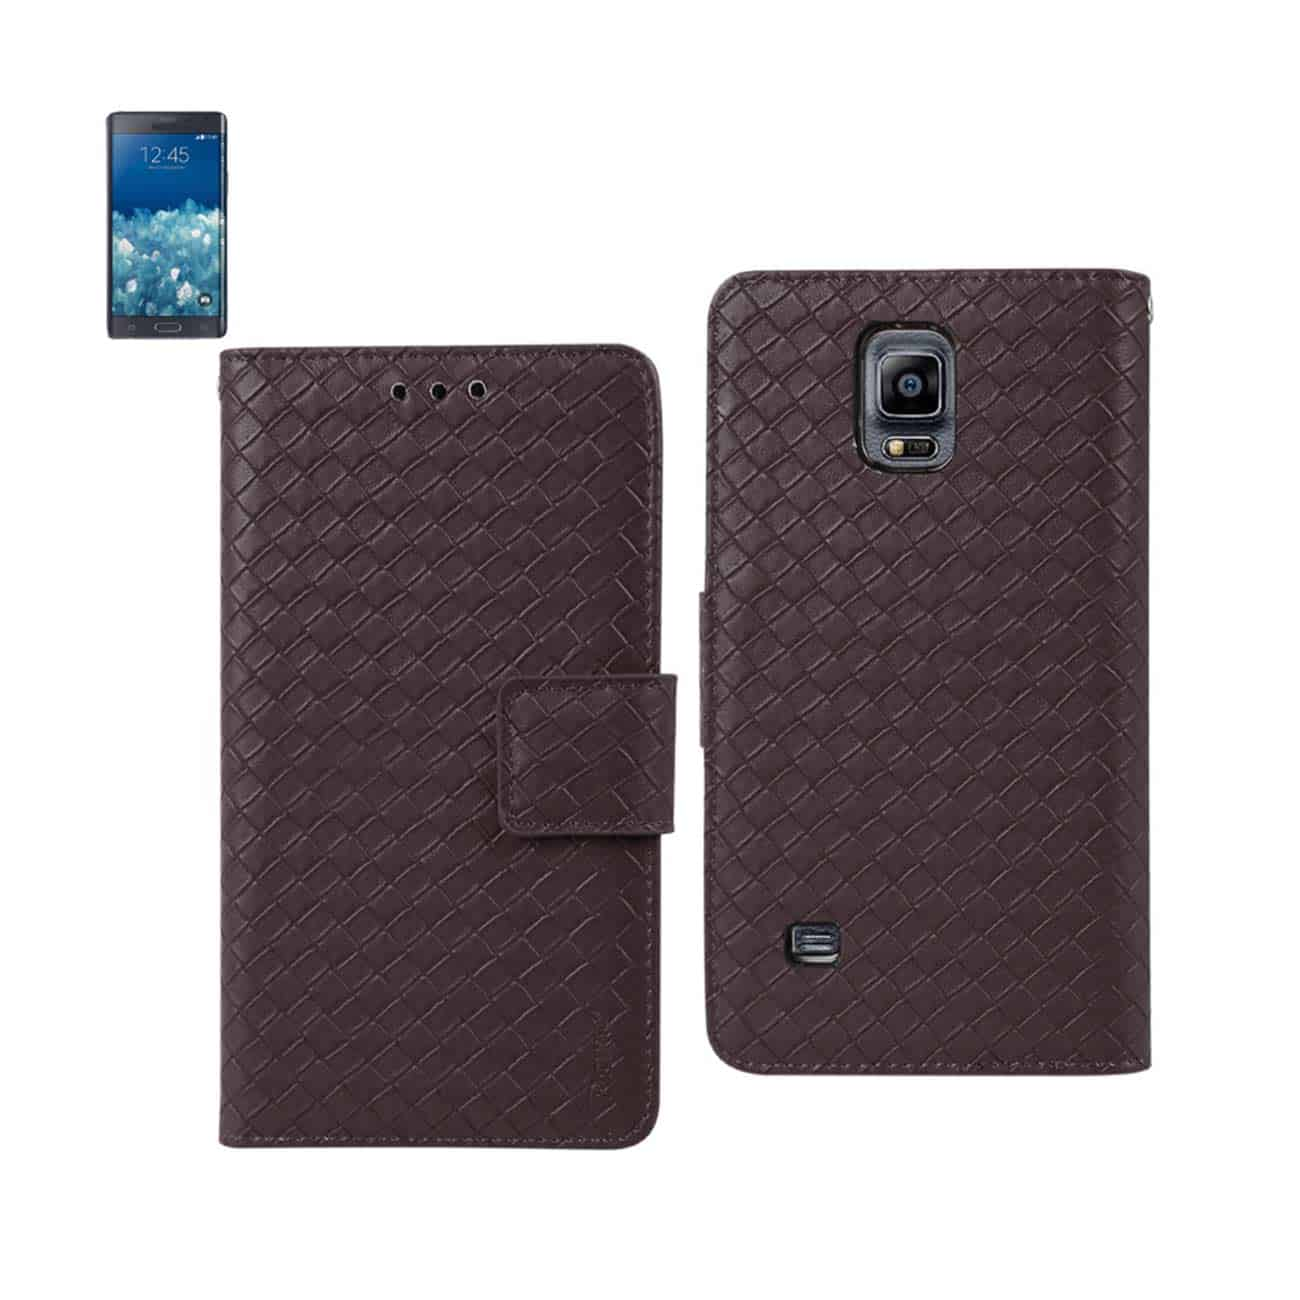 SAMSUNG GALAXY NOTE EDGE BRAIDED WALLET CASE IN BROWN